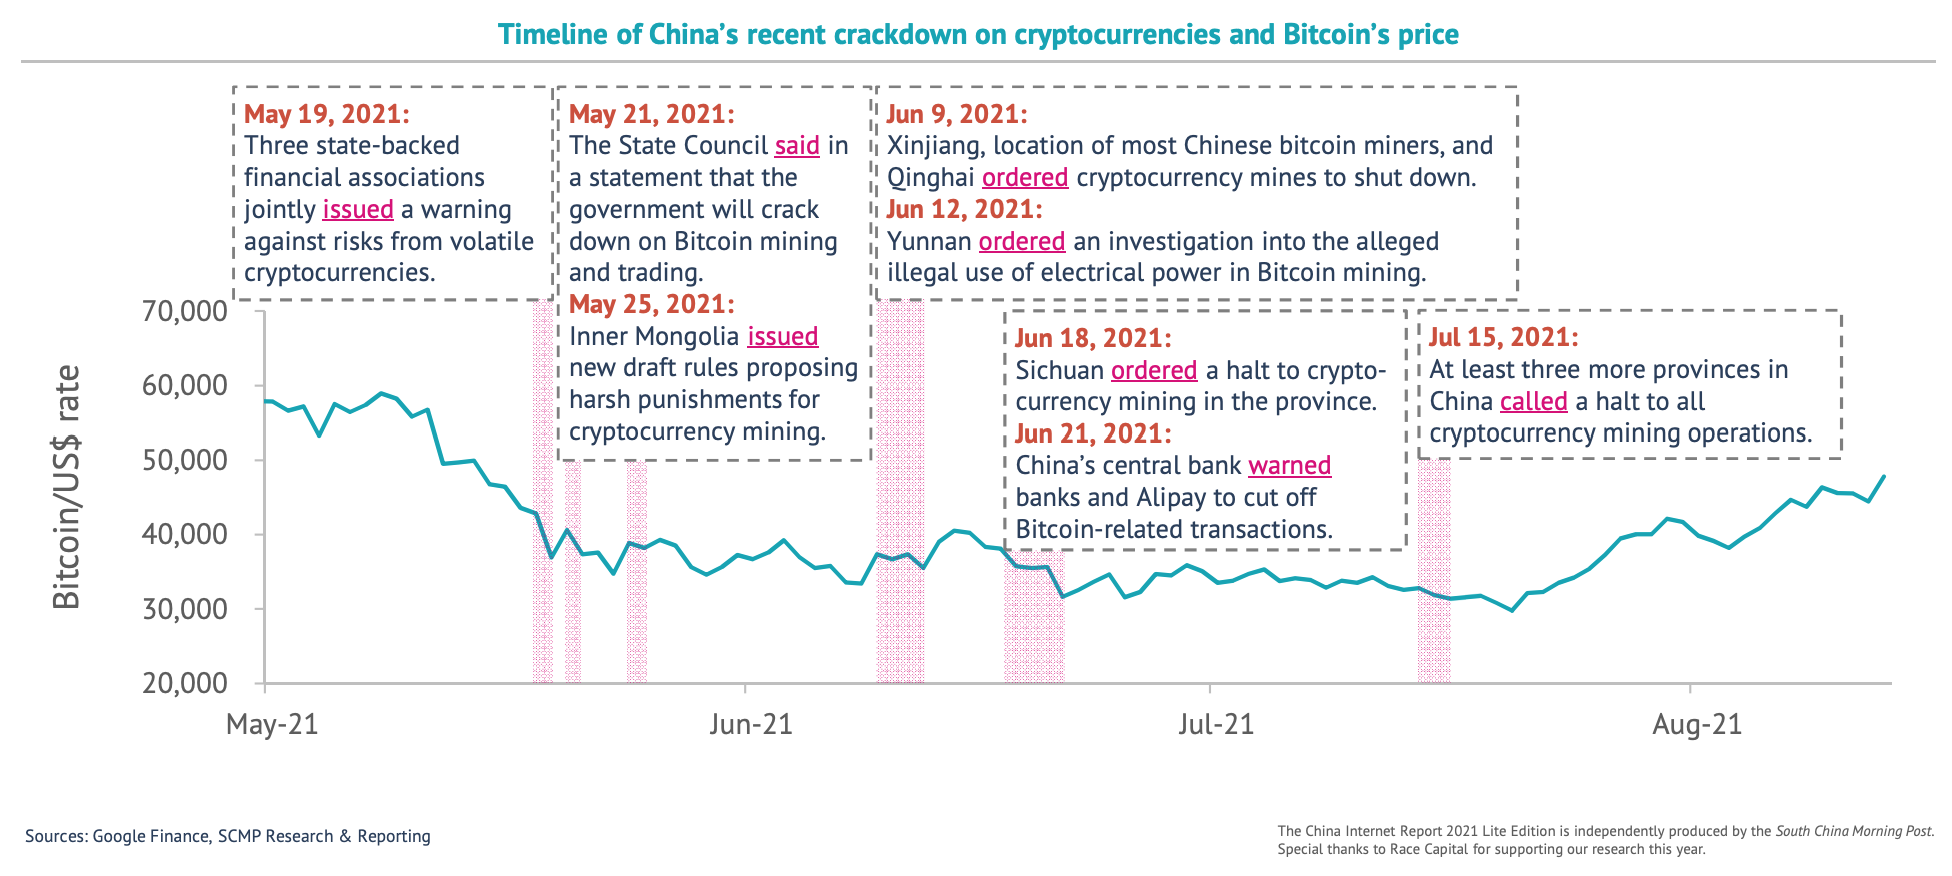 Timeline of China's recent crackdown on cryptocurrencies and the price of bitcoin